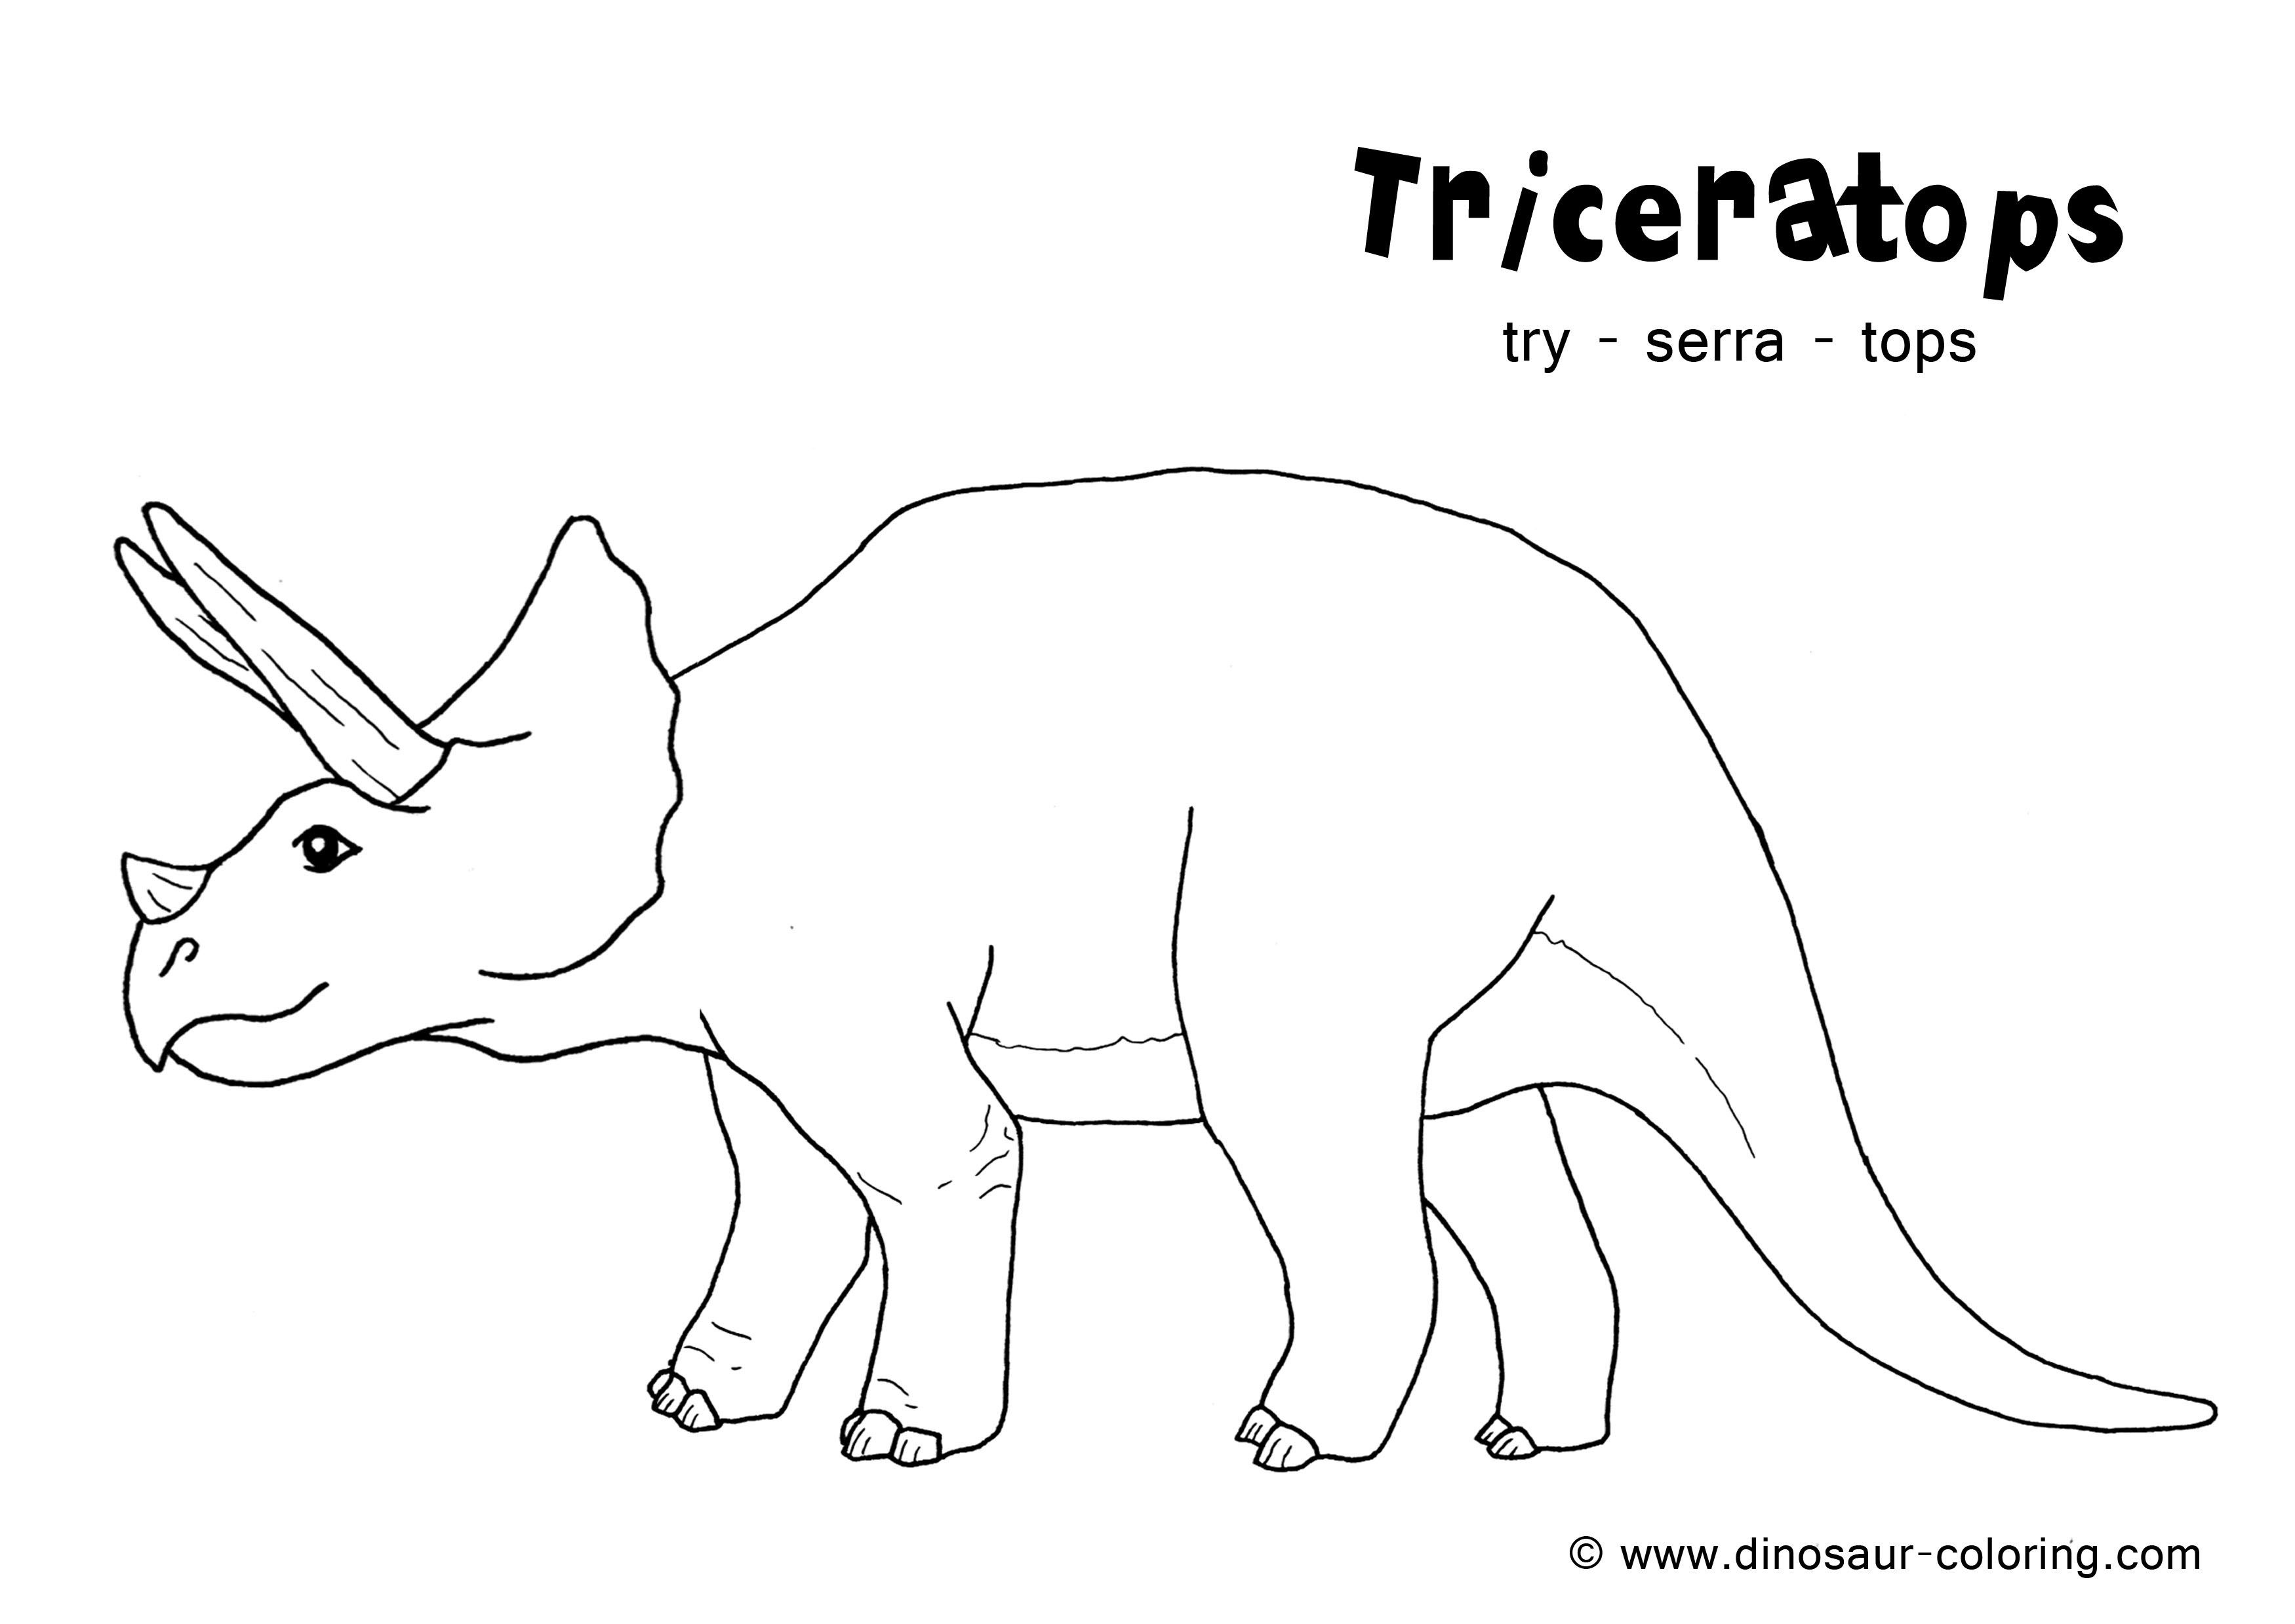 Triceratops was a dinosaur of the late cretaceous period 67-65 ...